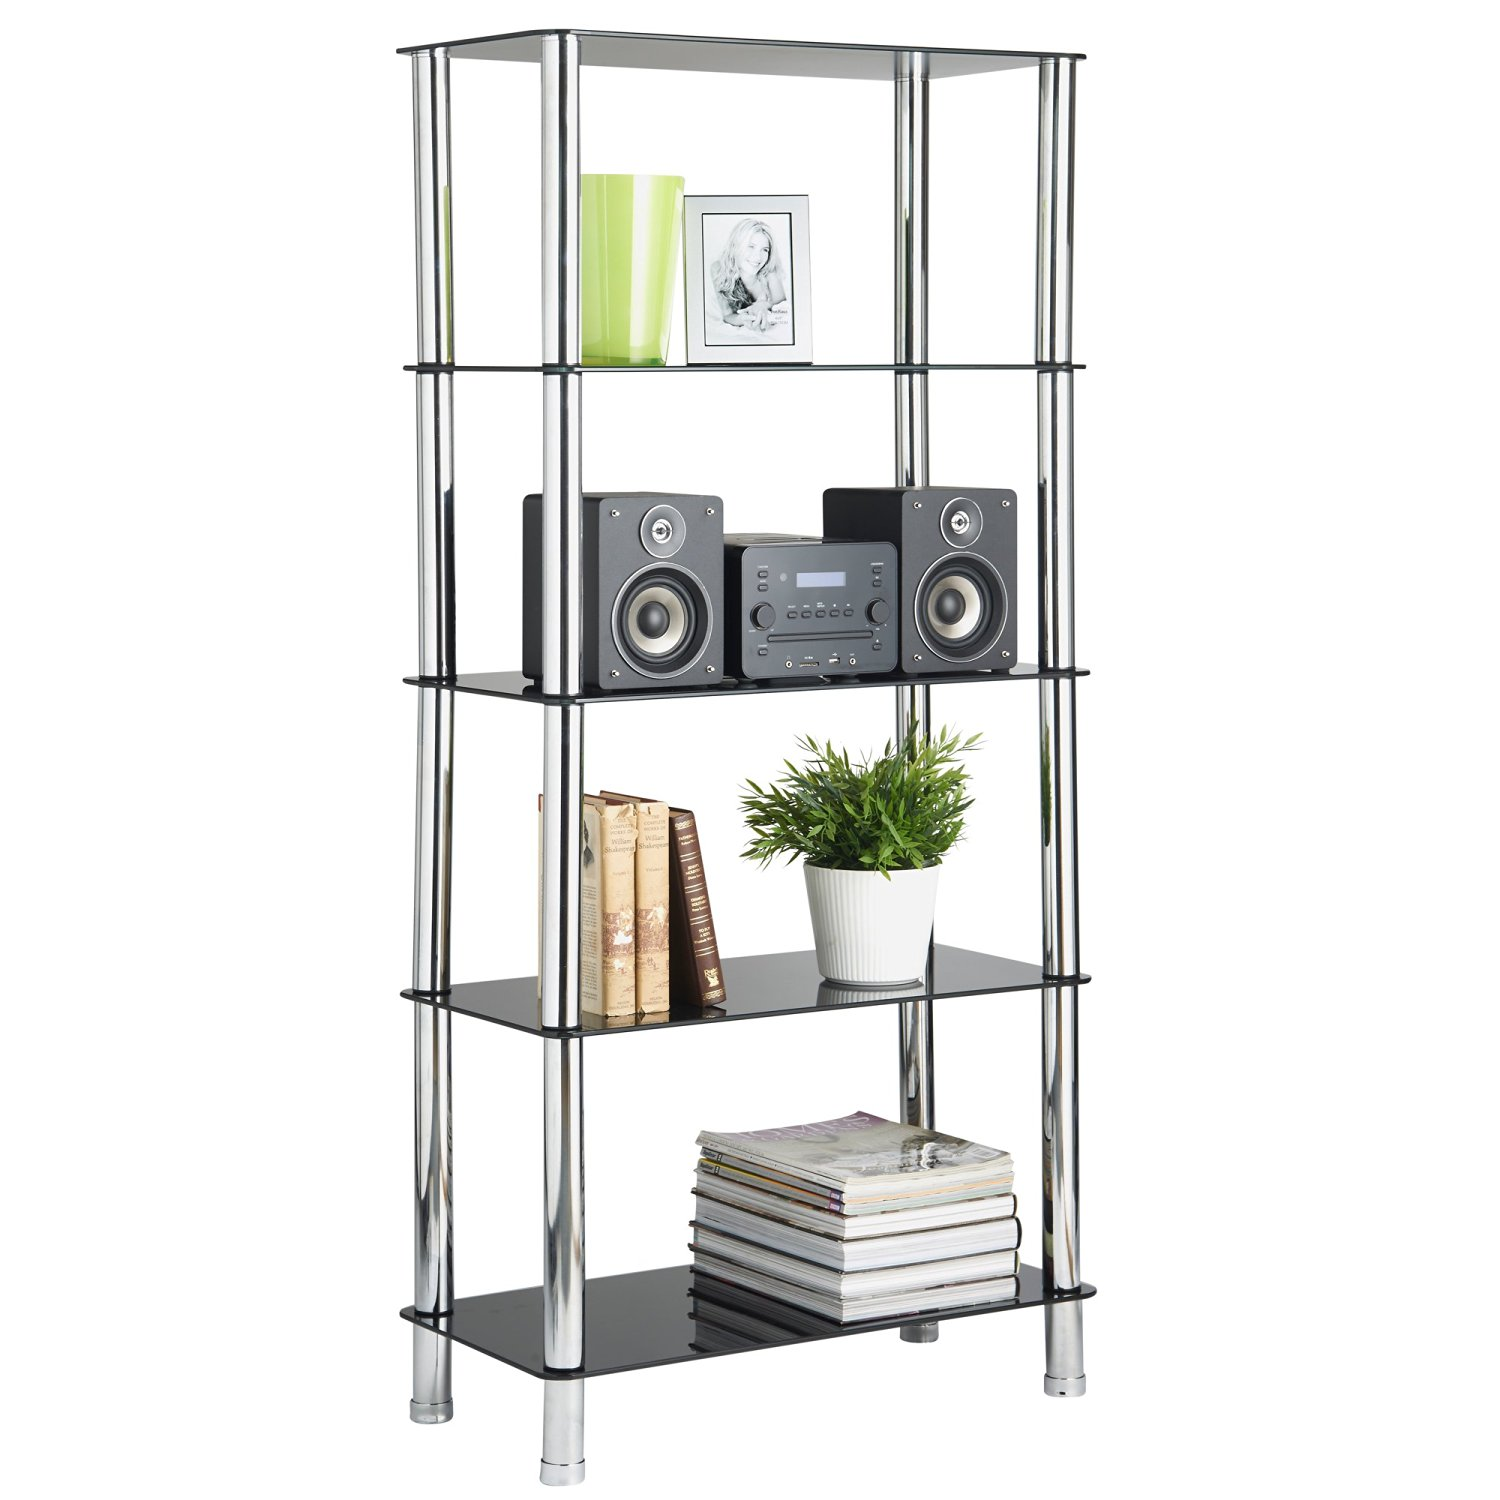 Cheap Glass Shelving Unit, find Glass Shelving Unit deals on line at ...